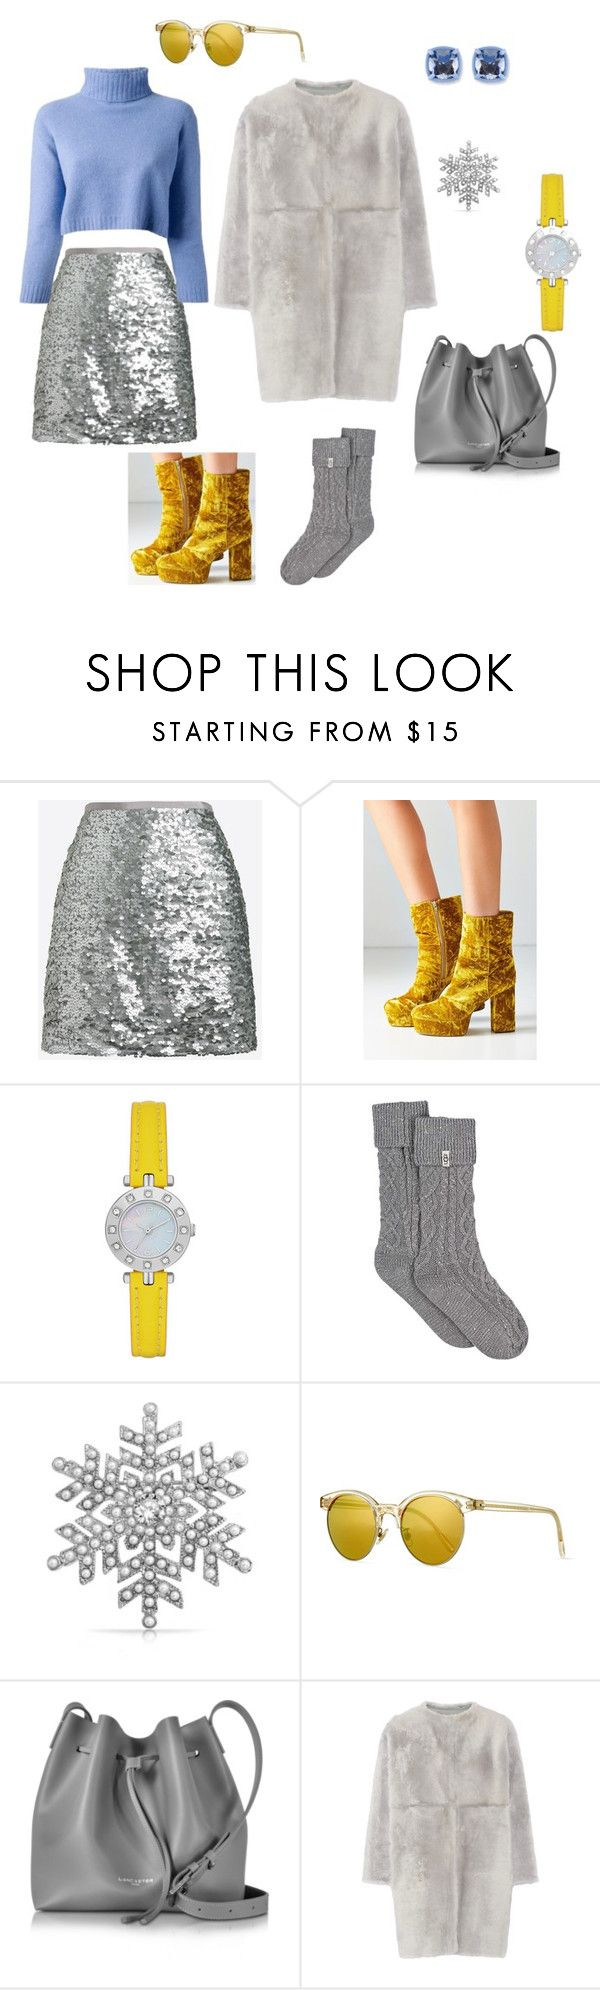 """""""Set 3"""" by natucsya on Polyvore featuring мода, J.Crew, nenette, Urban Outfitters, UGG, Bling Jewelry, Oliver Peoples, Lancaster и Karl Donoghue"""